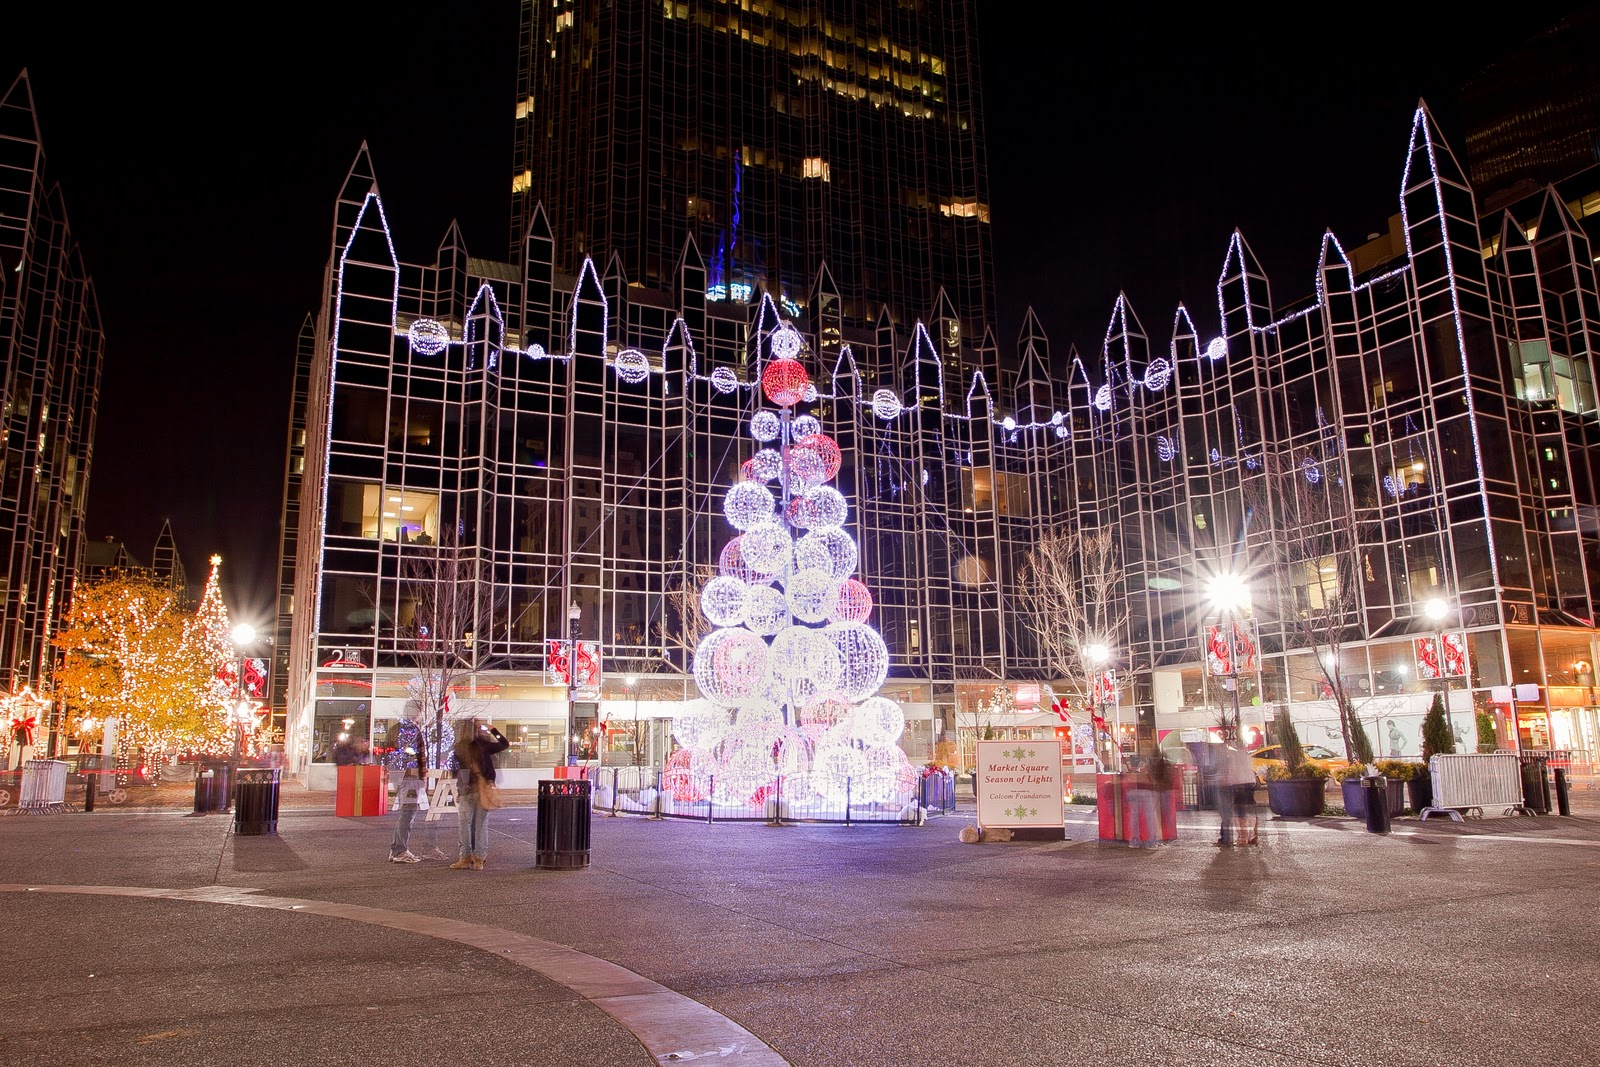 Market Square Pittsburgh: A Winter Wonderland